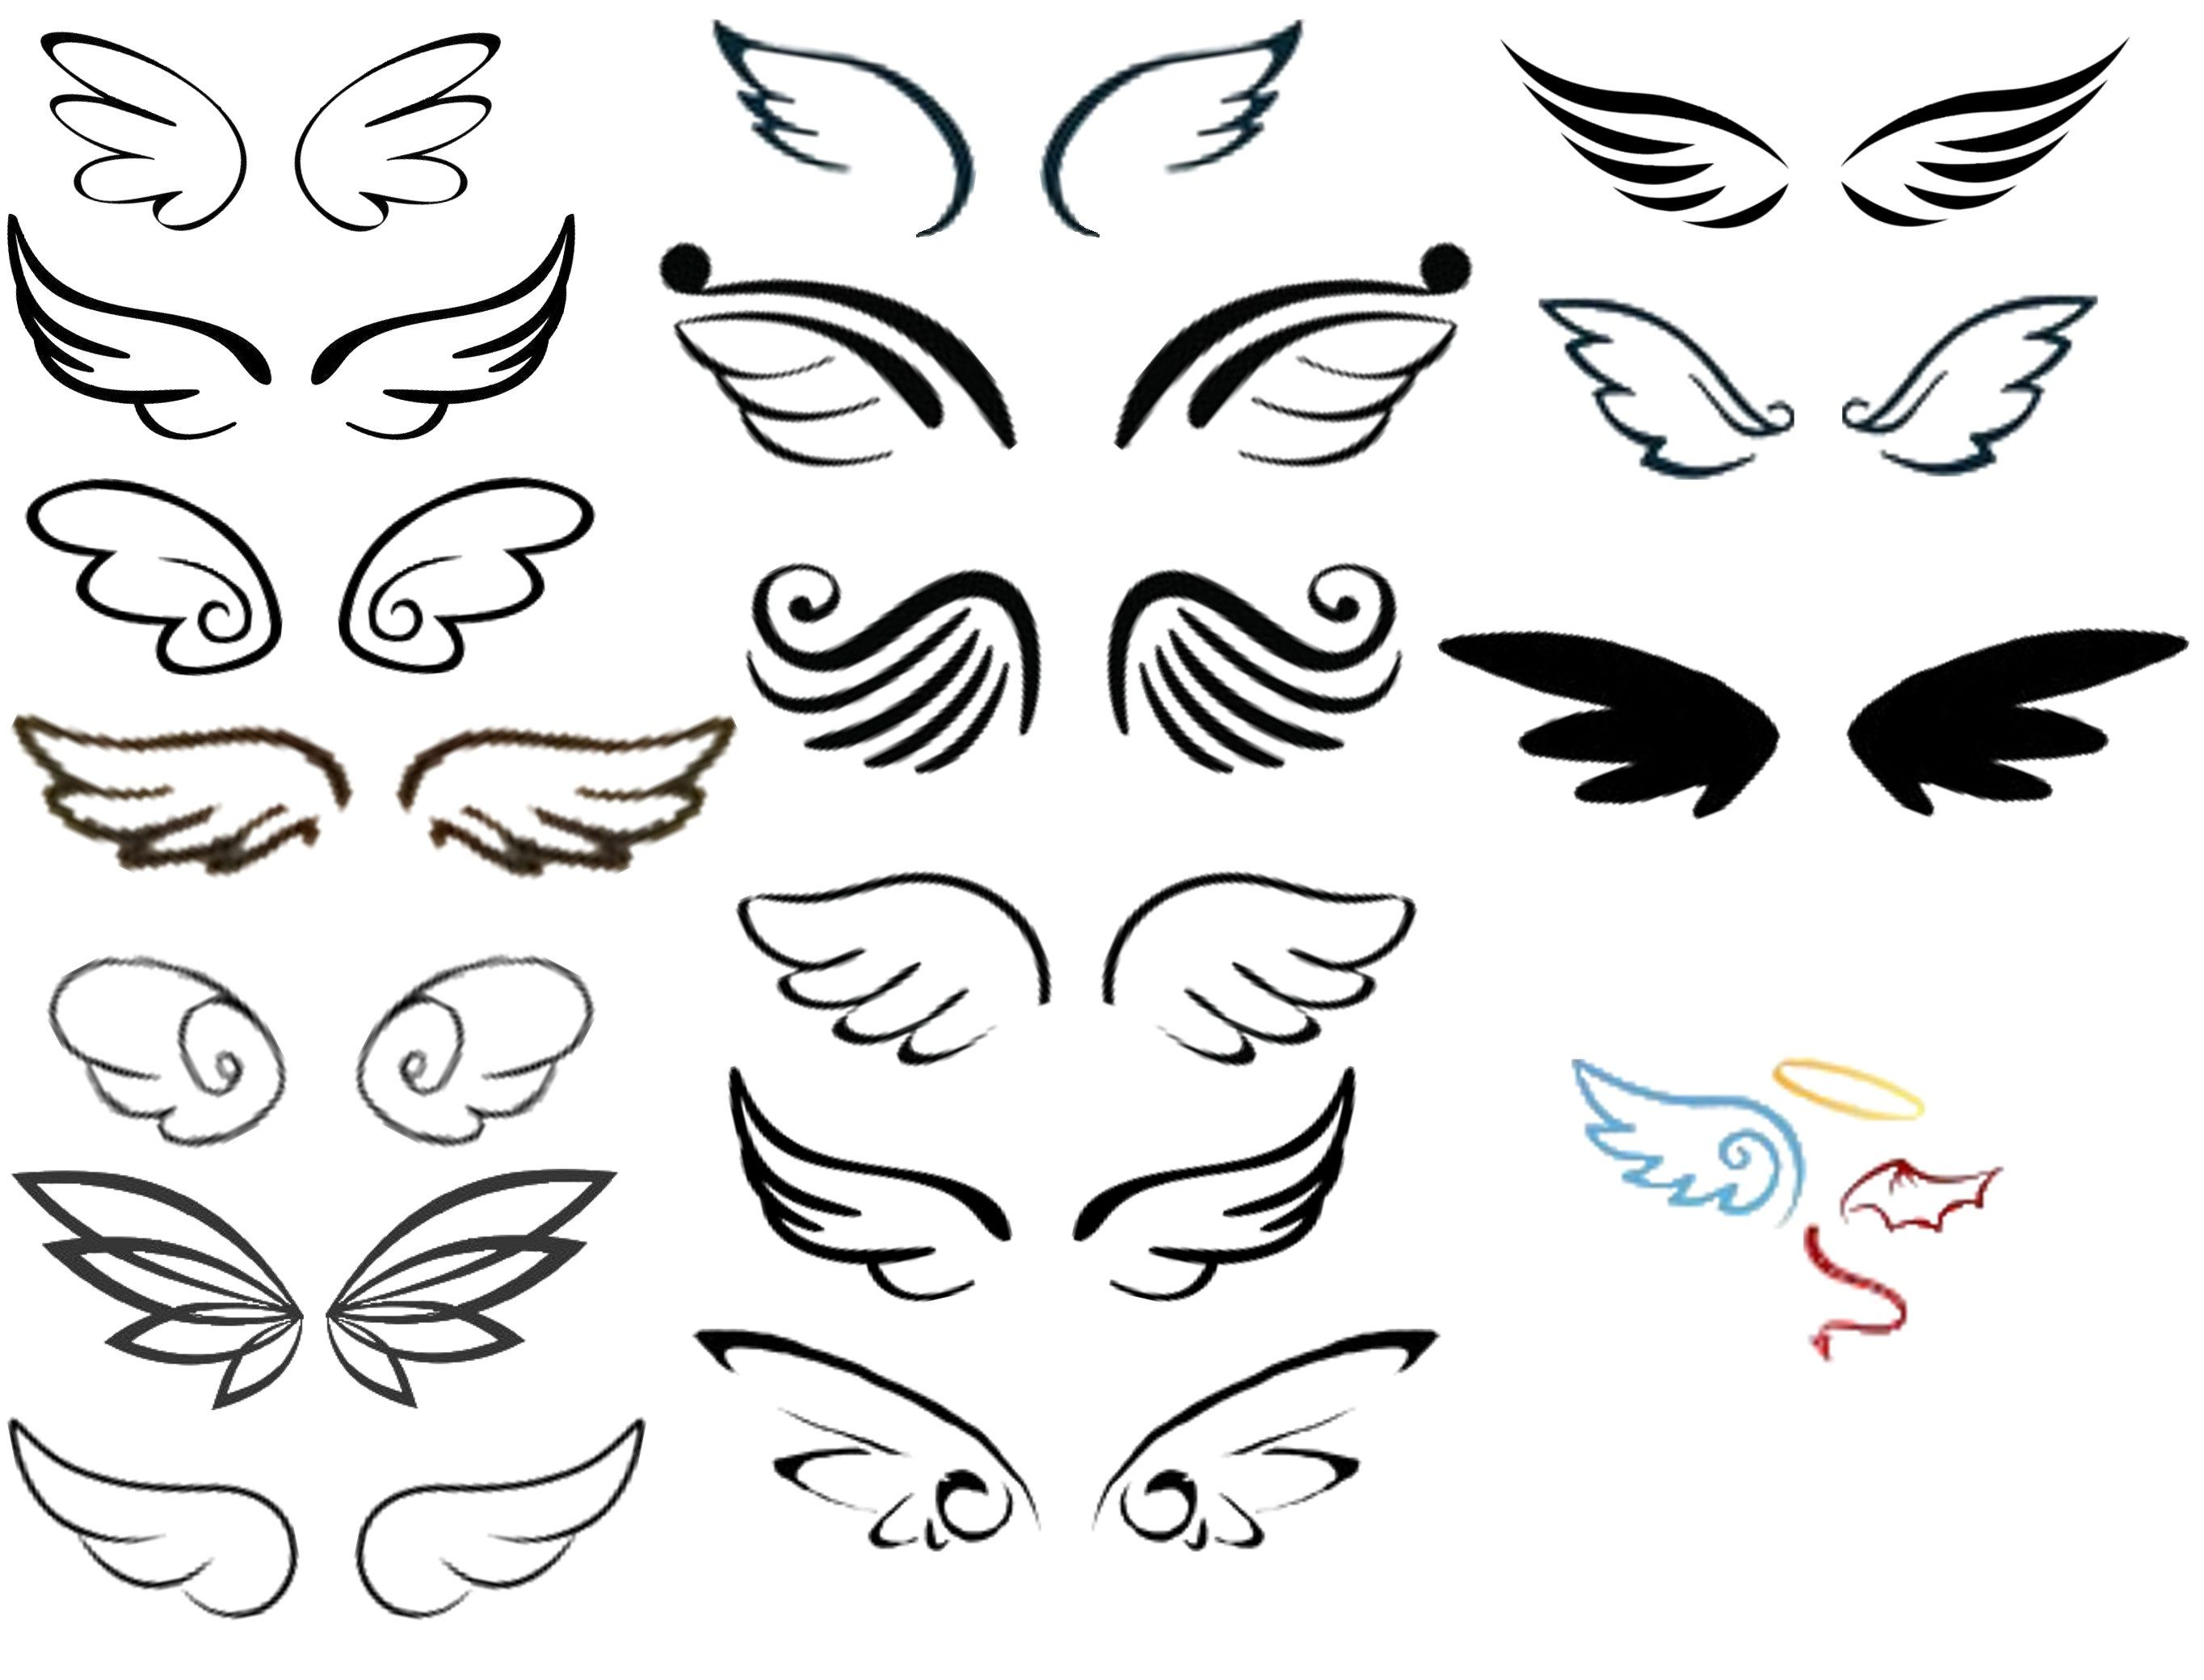 Wing Pairs I Made From All Choices So Far I Saw And Let's